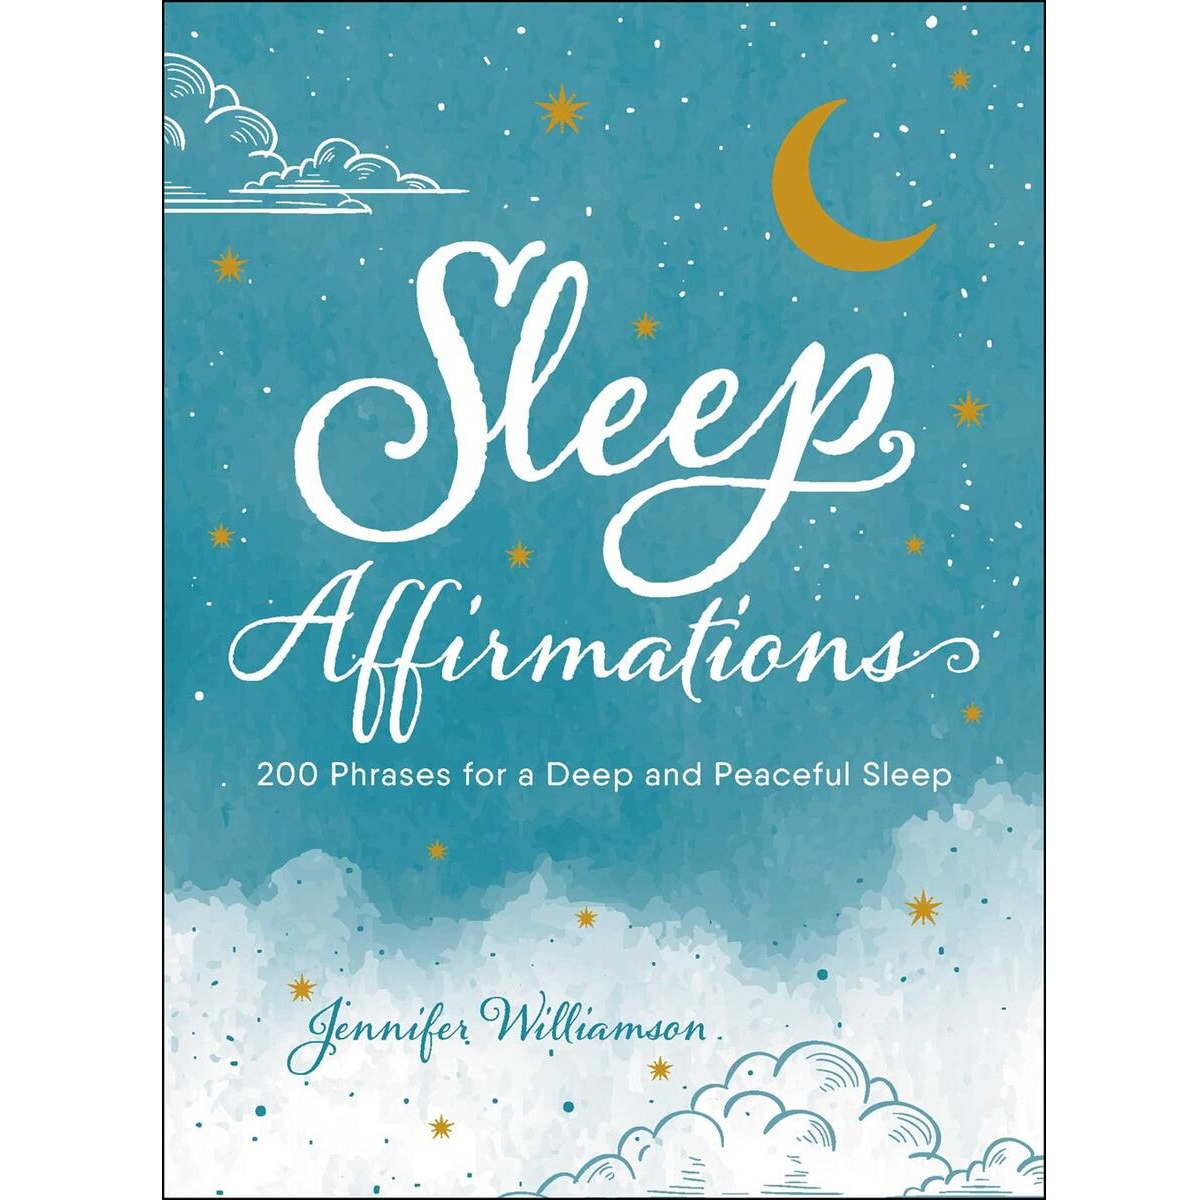 Microcosm Publishing - Sleep Affirmations 200 Phrases for a Deep and Peaceful Sleep